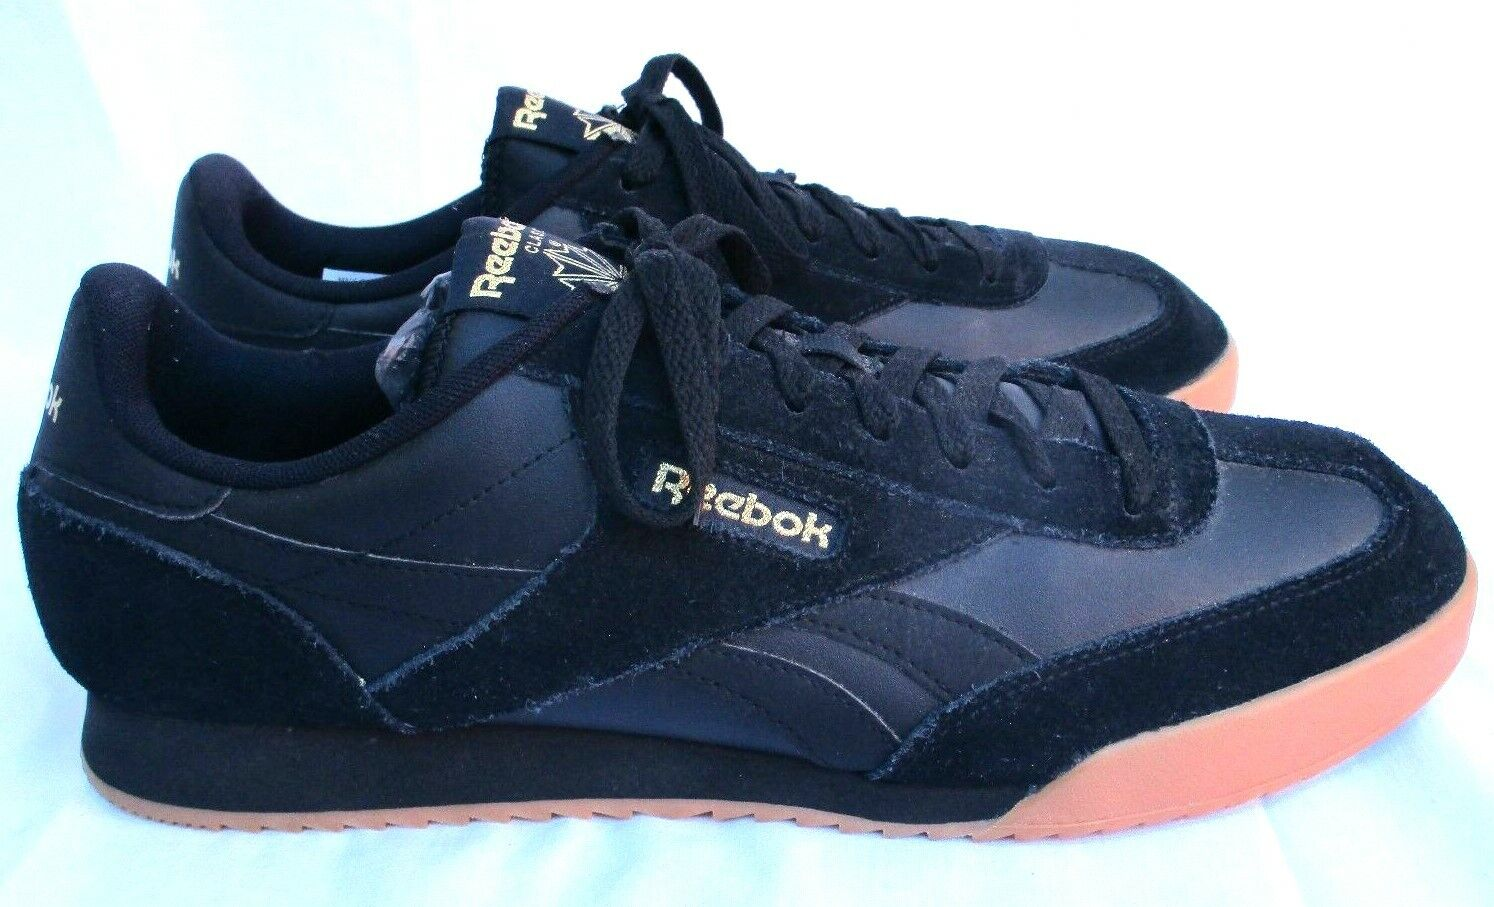 REEBOK..CLASSIC..BLACK..SUEDE LEATHER..SHOES   SNEAKERS..sz 10.5